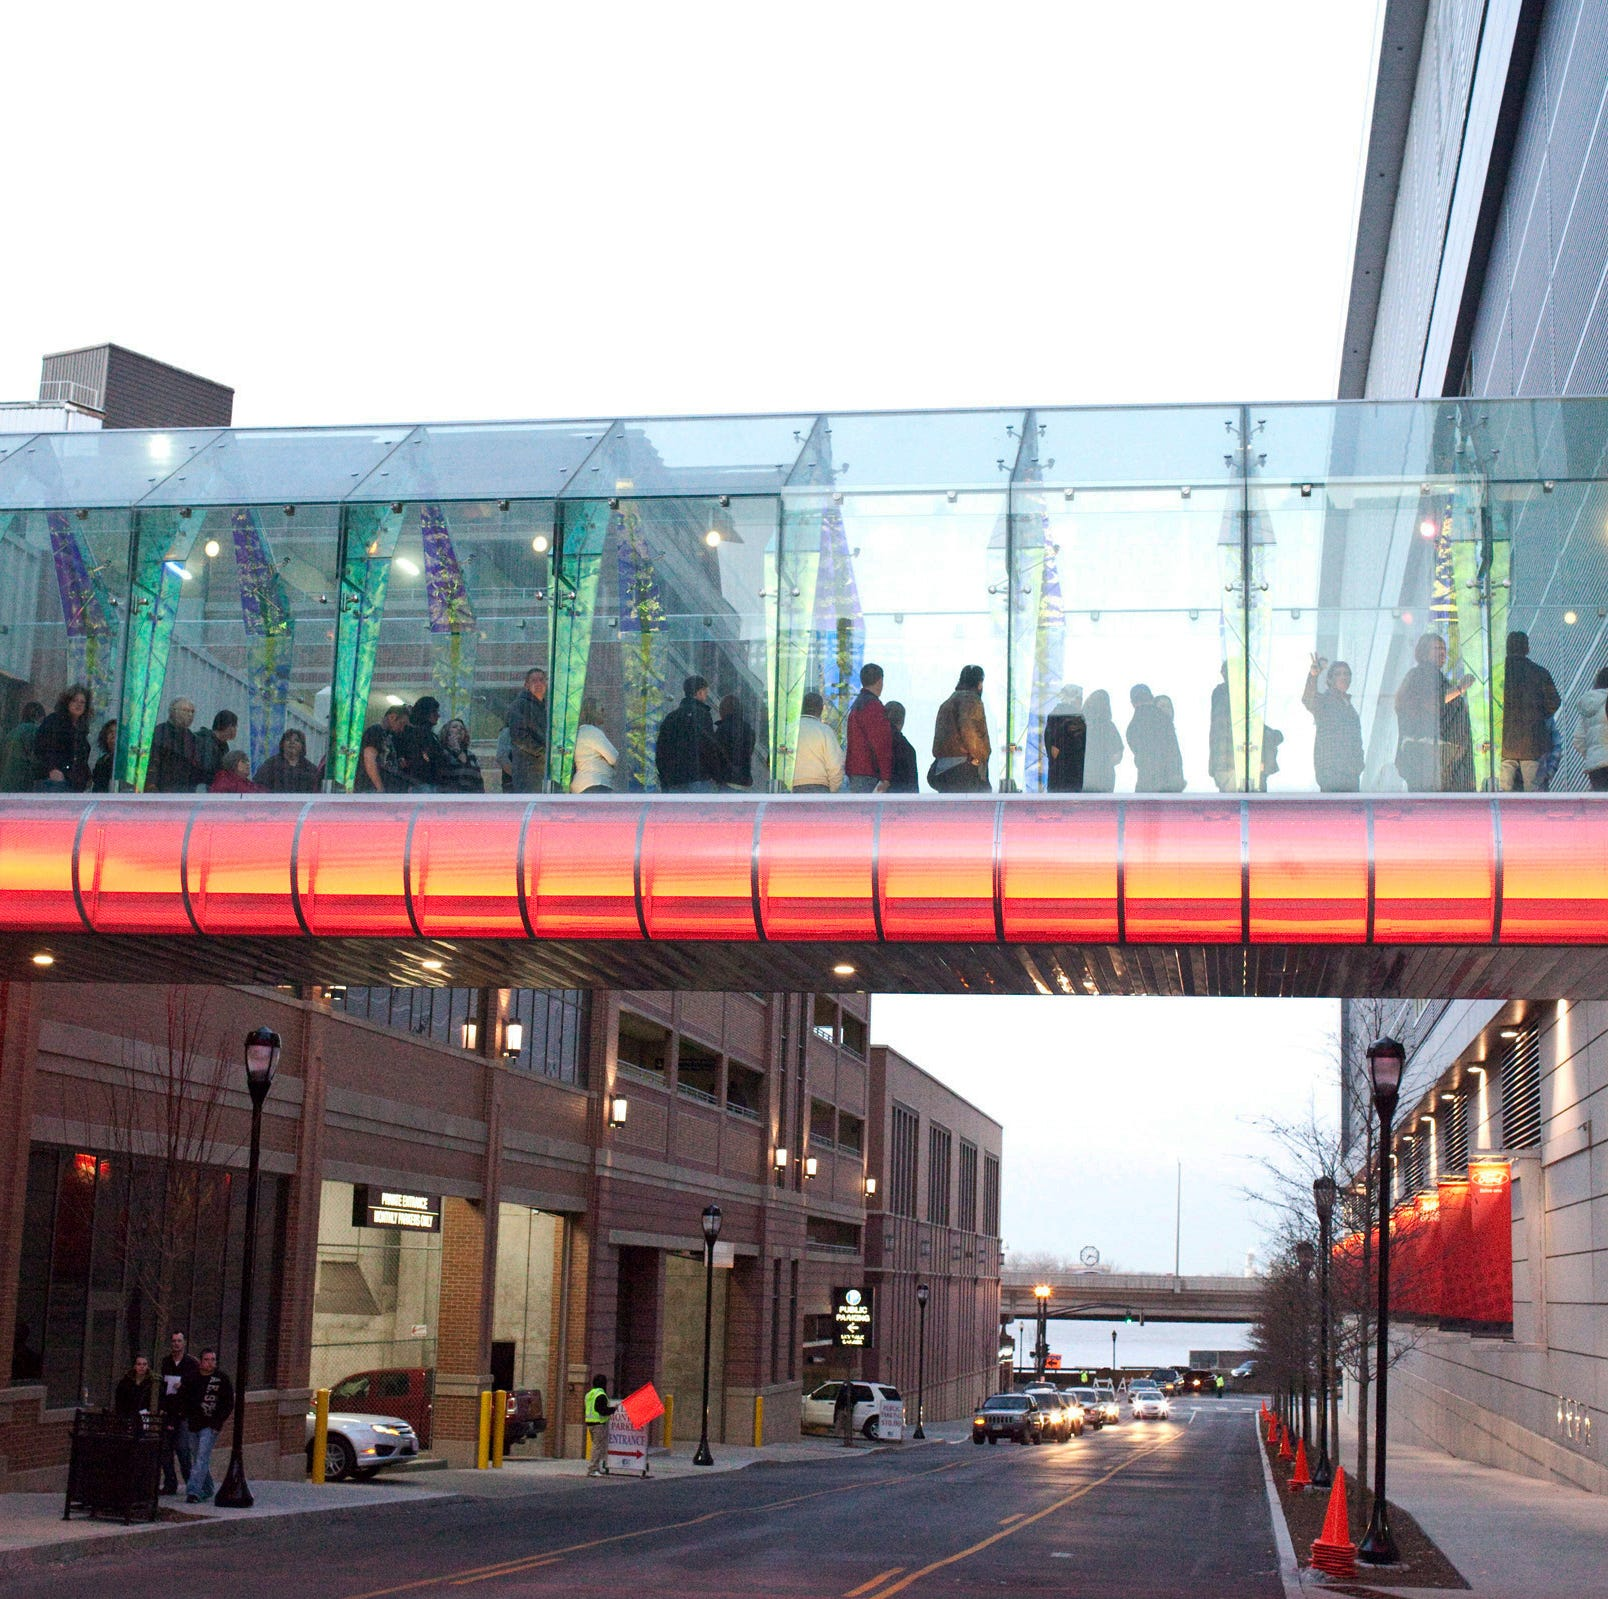 Louisville has a skywalk system, but most people don't know it's there